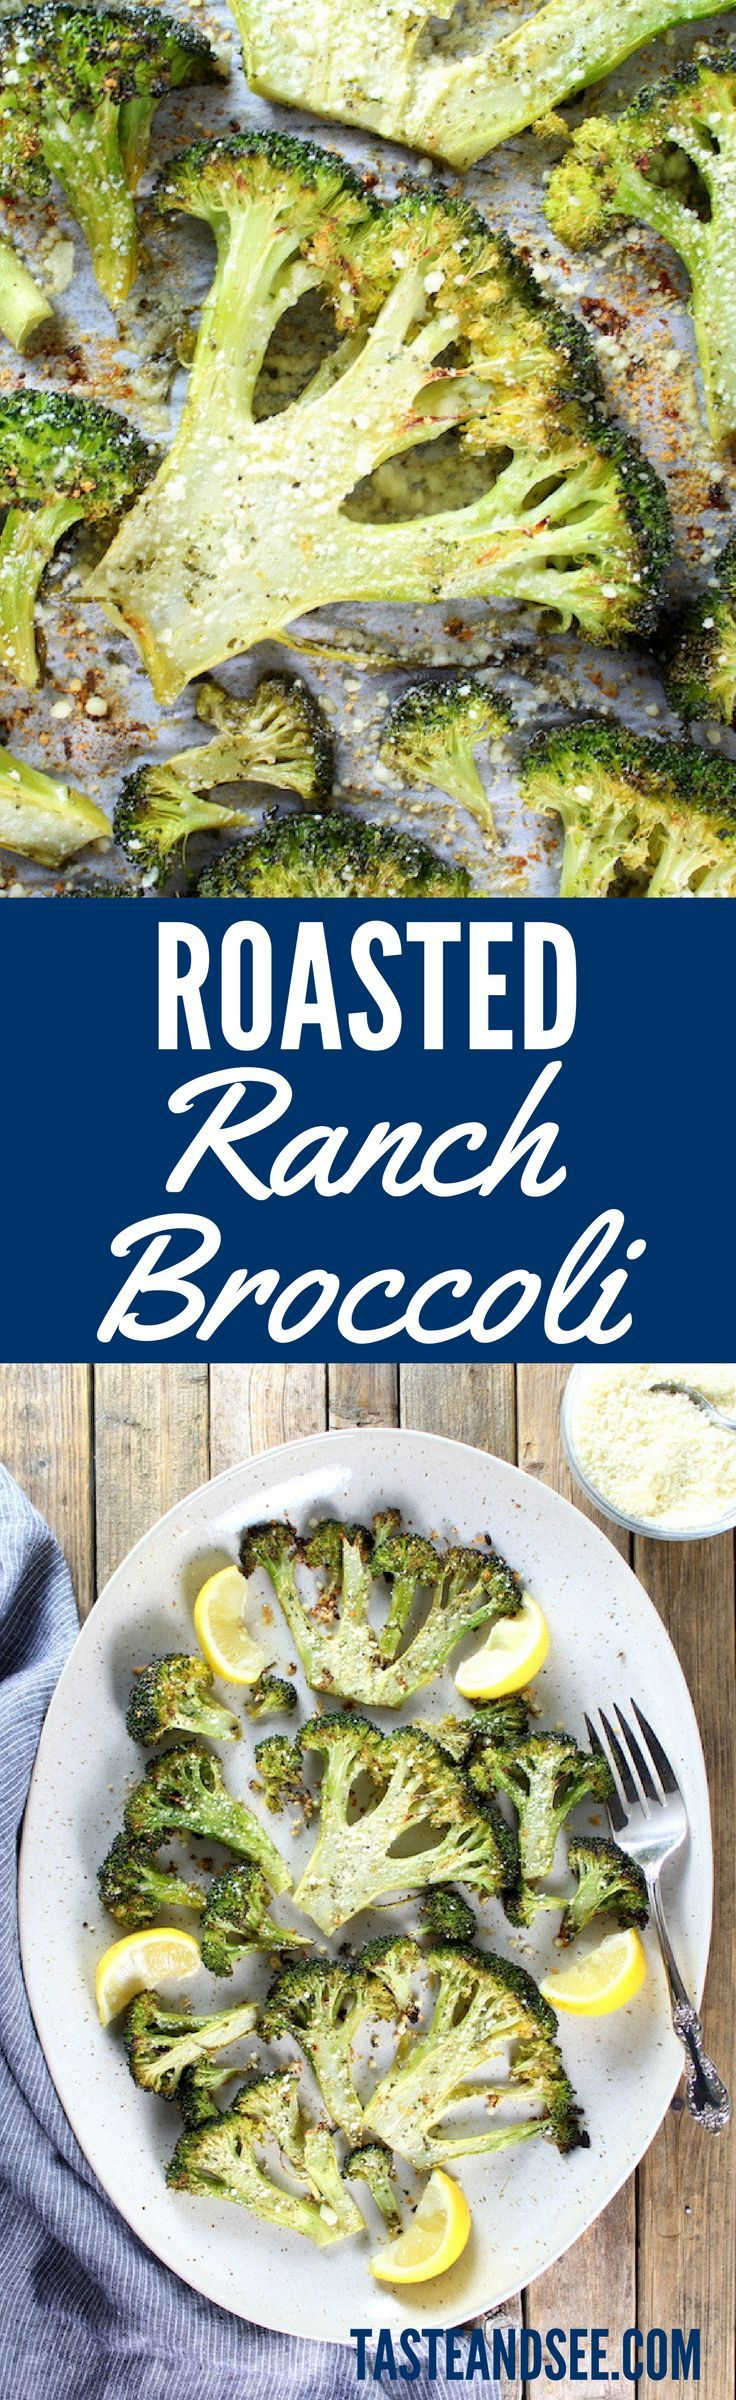 Roasted Ranch Broccoli with olive oil, lemon, & ranch seasoning… finished with parmesan cheese.  Super simple, healthy, & yummy!  http://tasteandsee.com